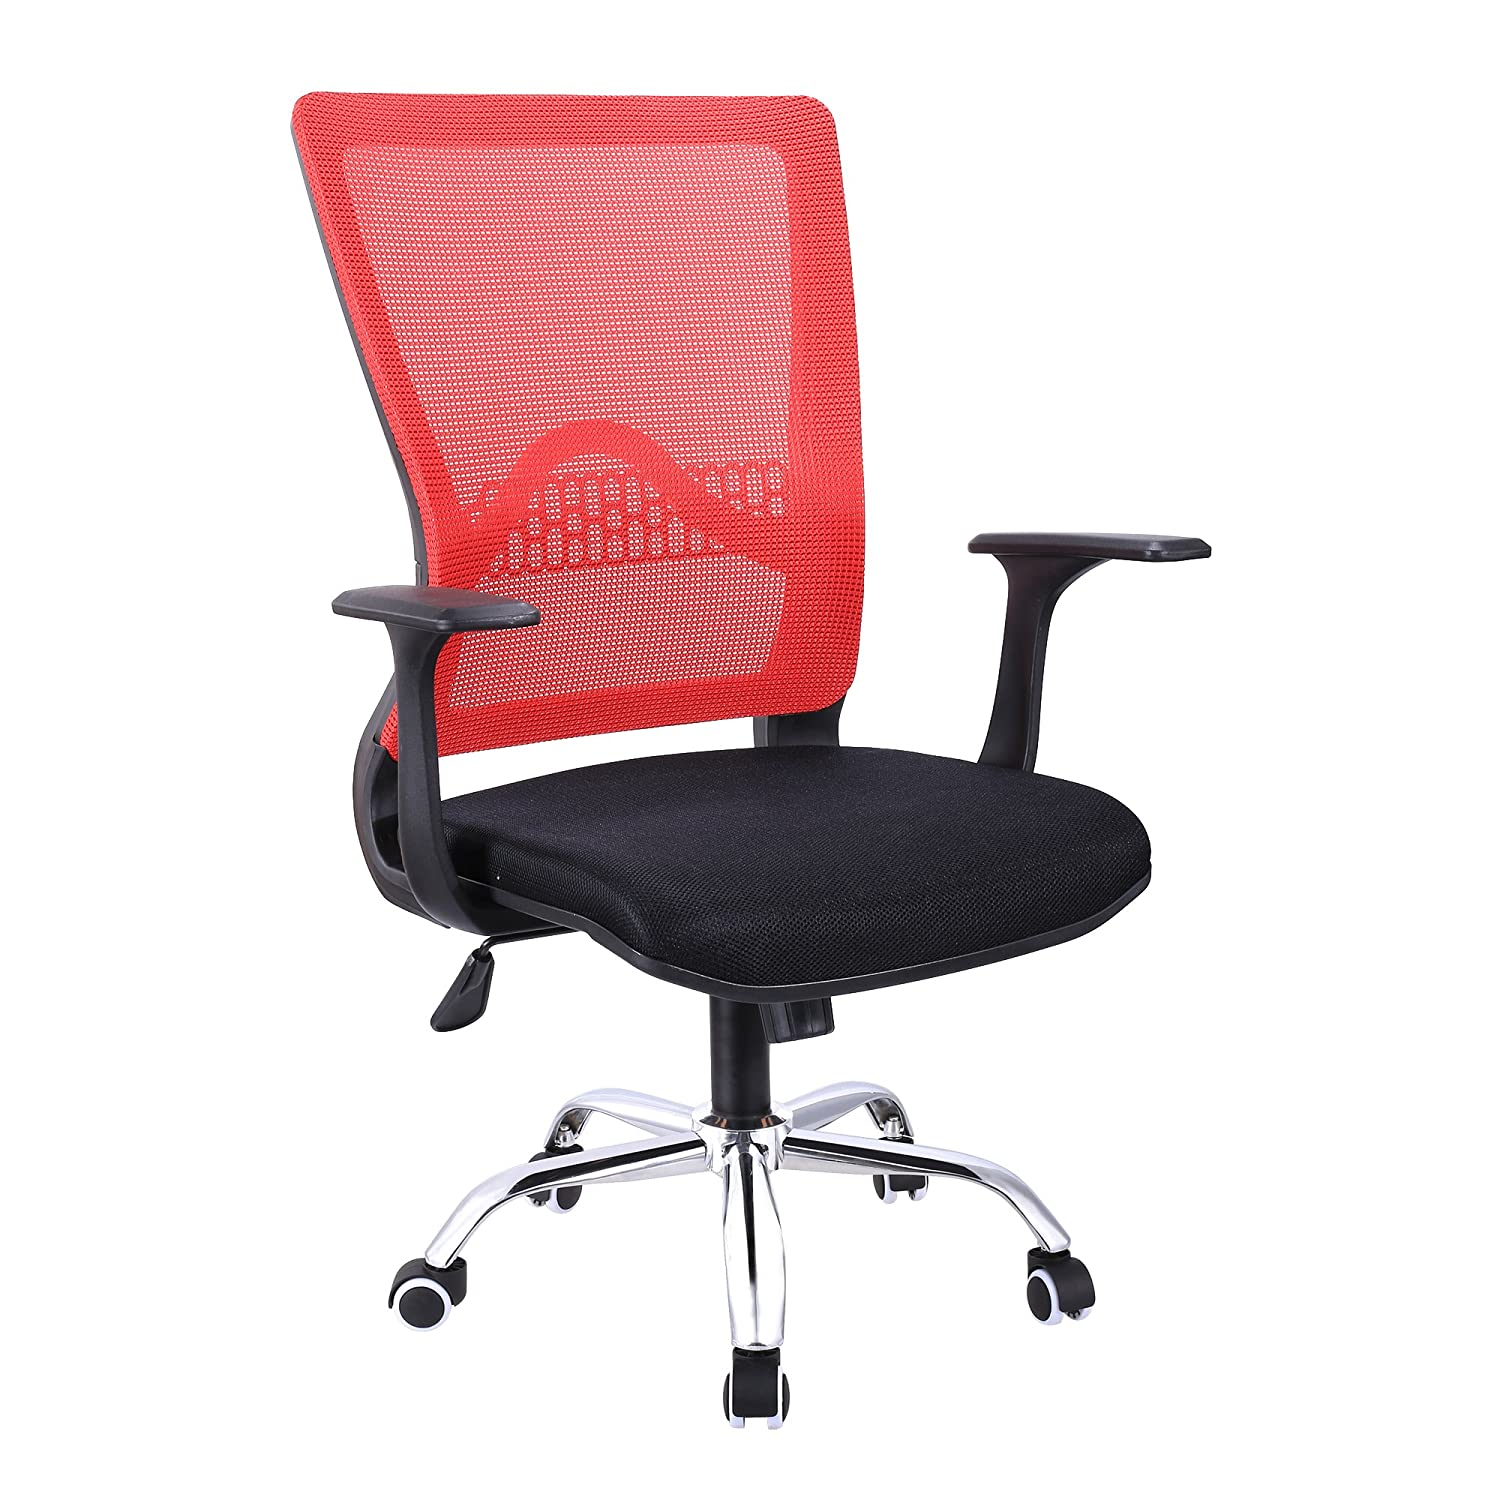 AN-OC001 Mid-Back Ergonomic Computer Desk Office Chair